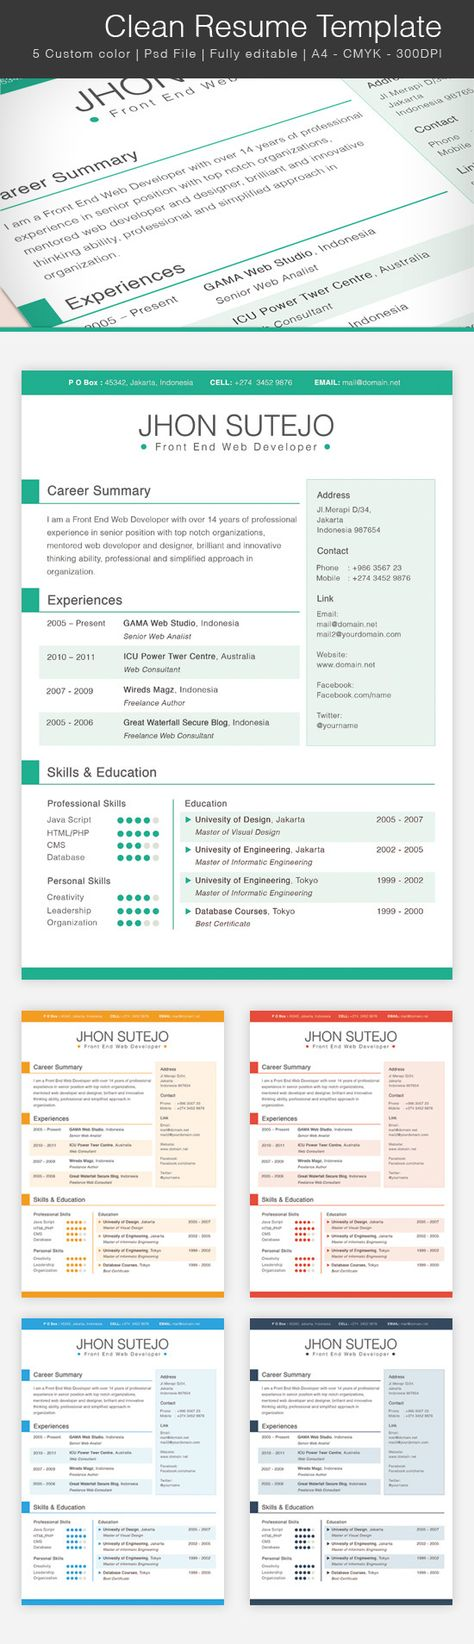 Free Clean Resume Template Free PSD Templates Pinterest - clean resume design